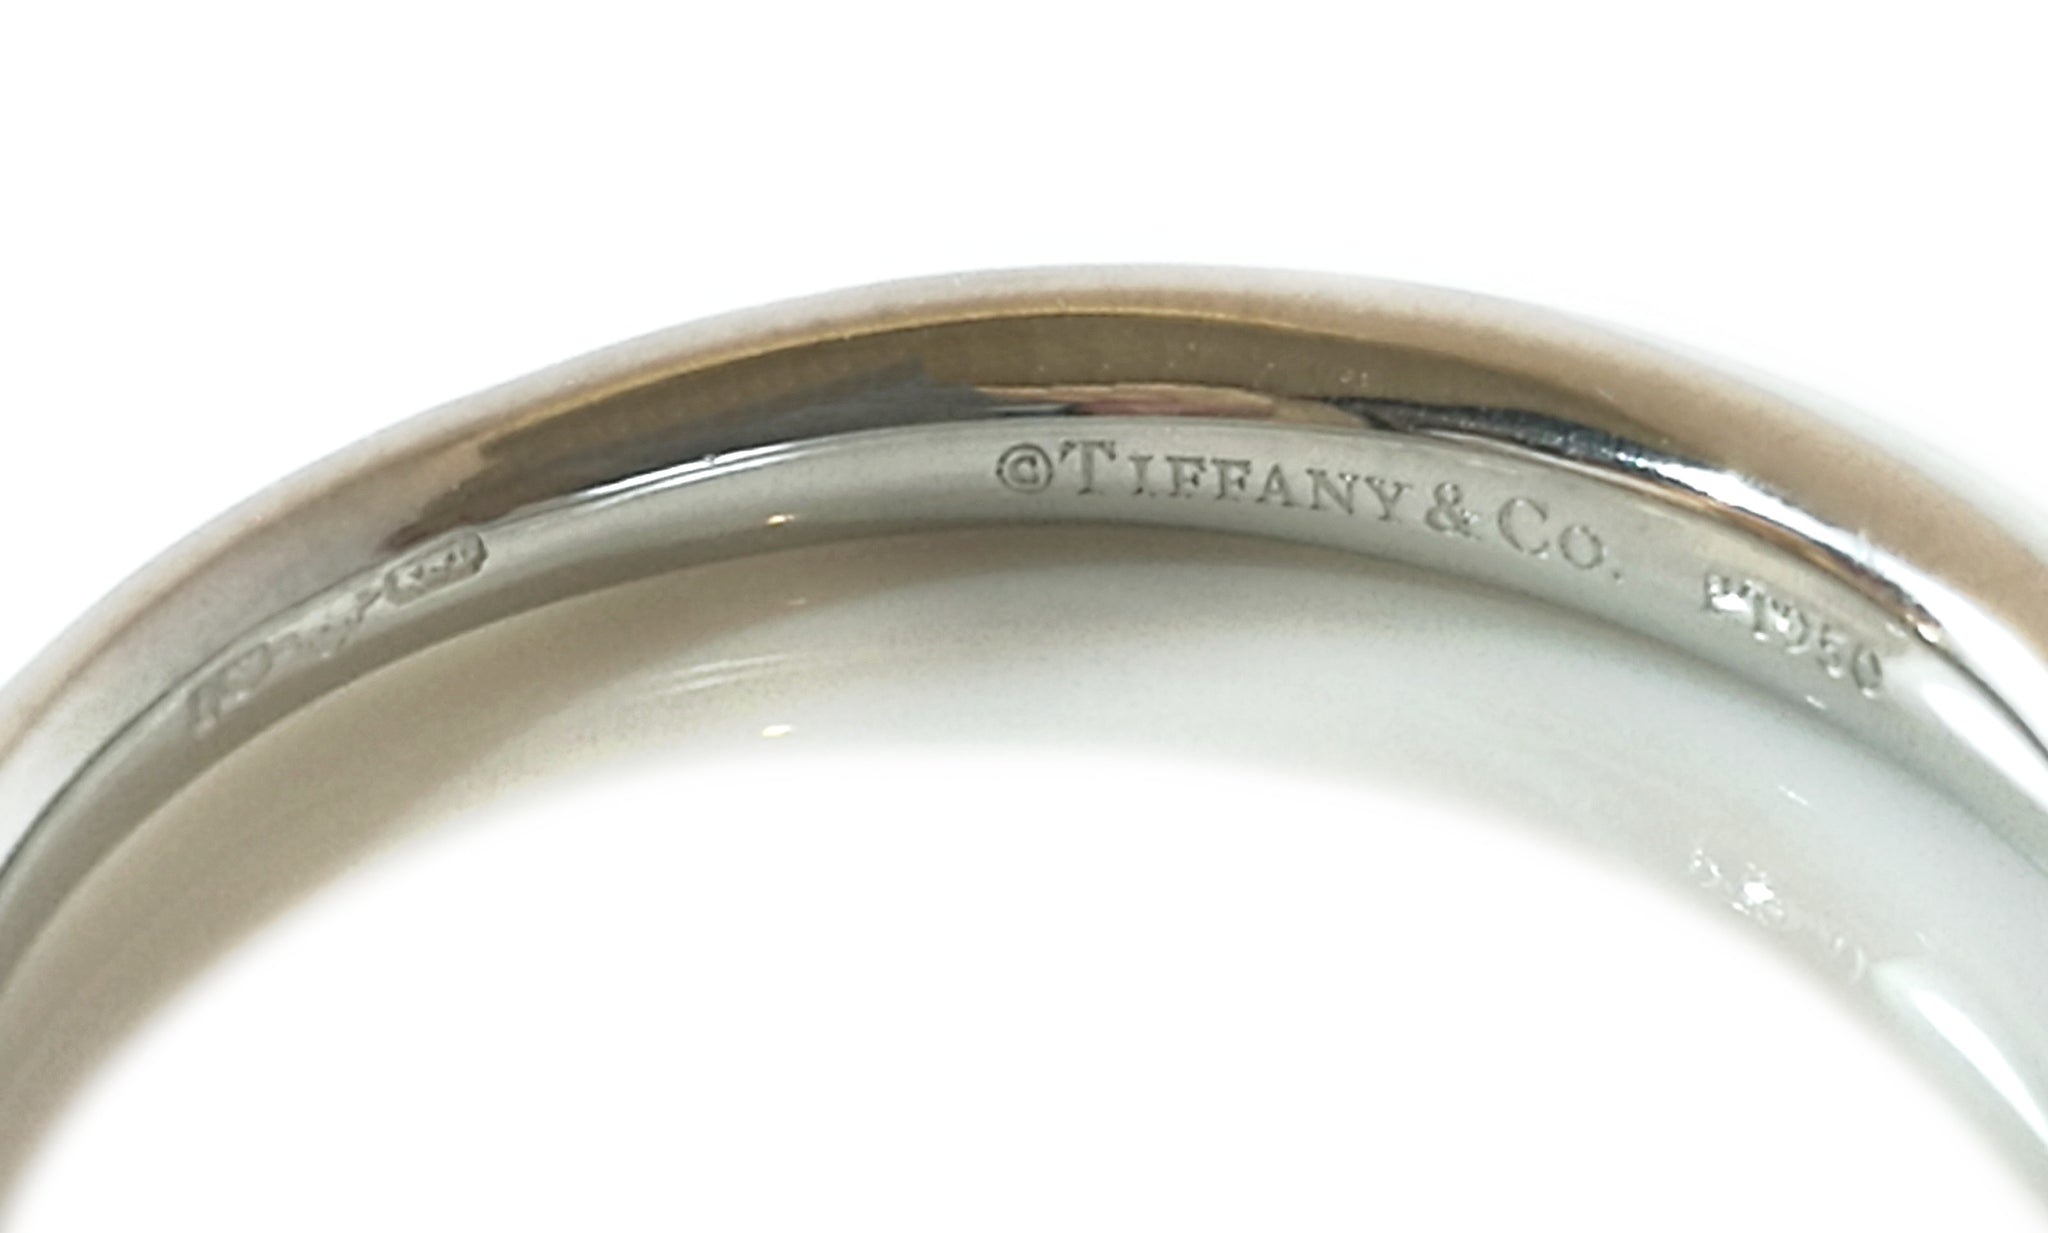 Tiffany Harmony Ring Makers mark and hallmarks